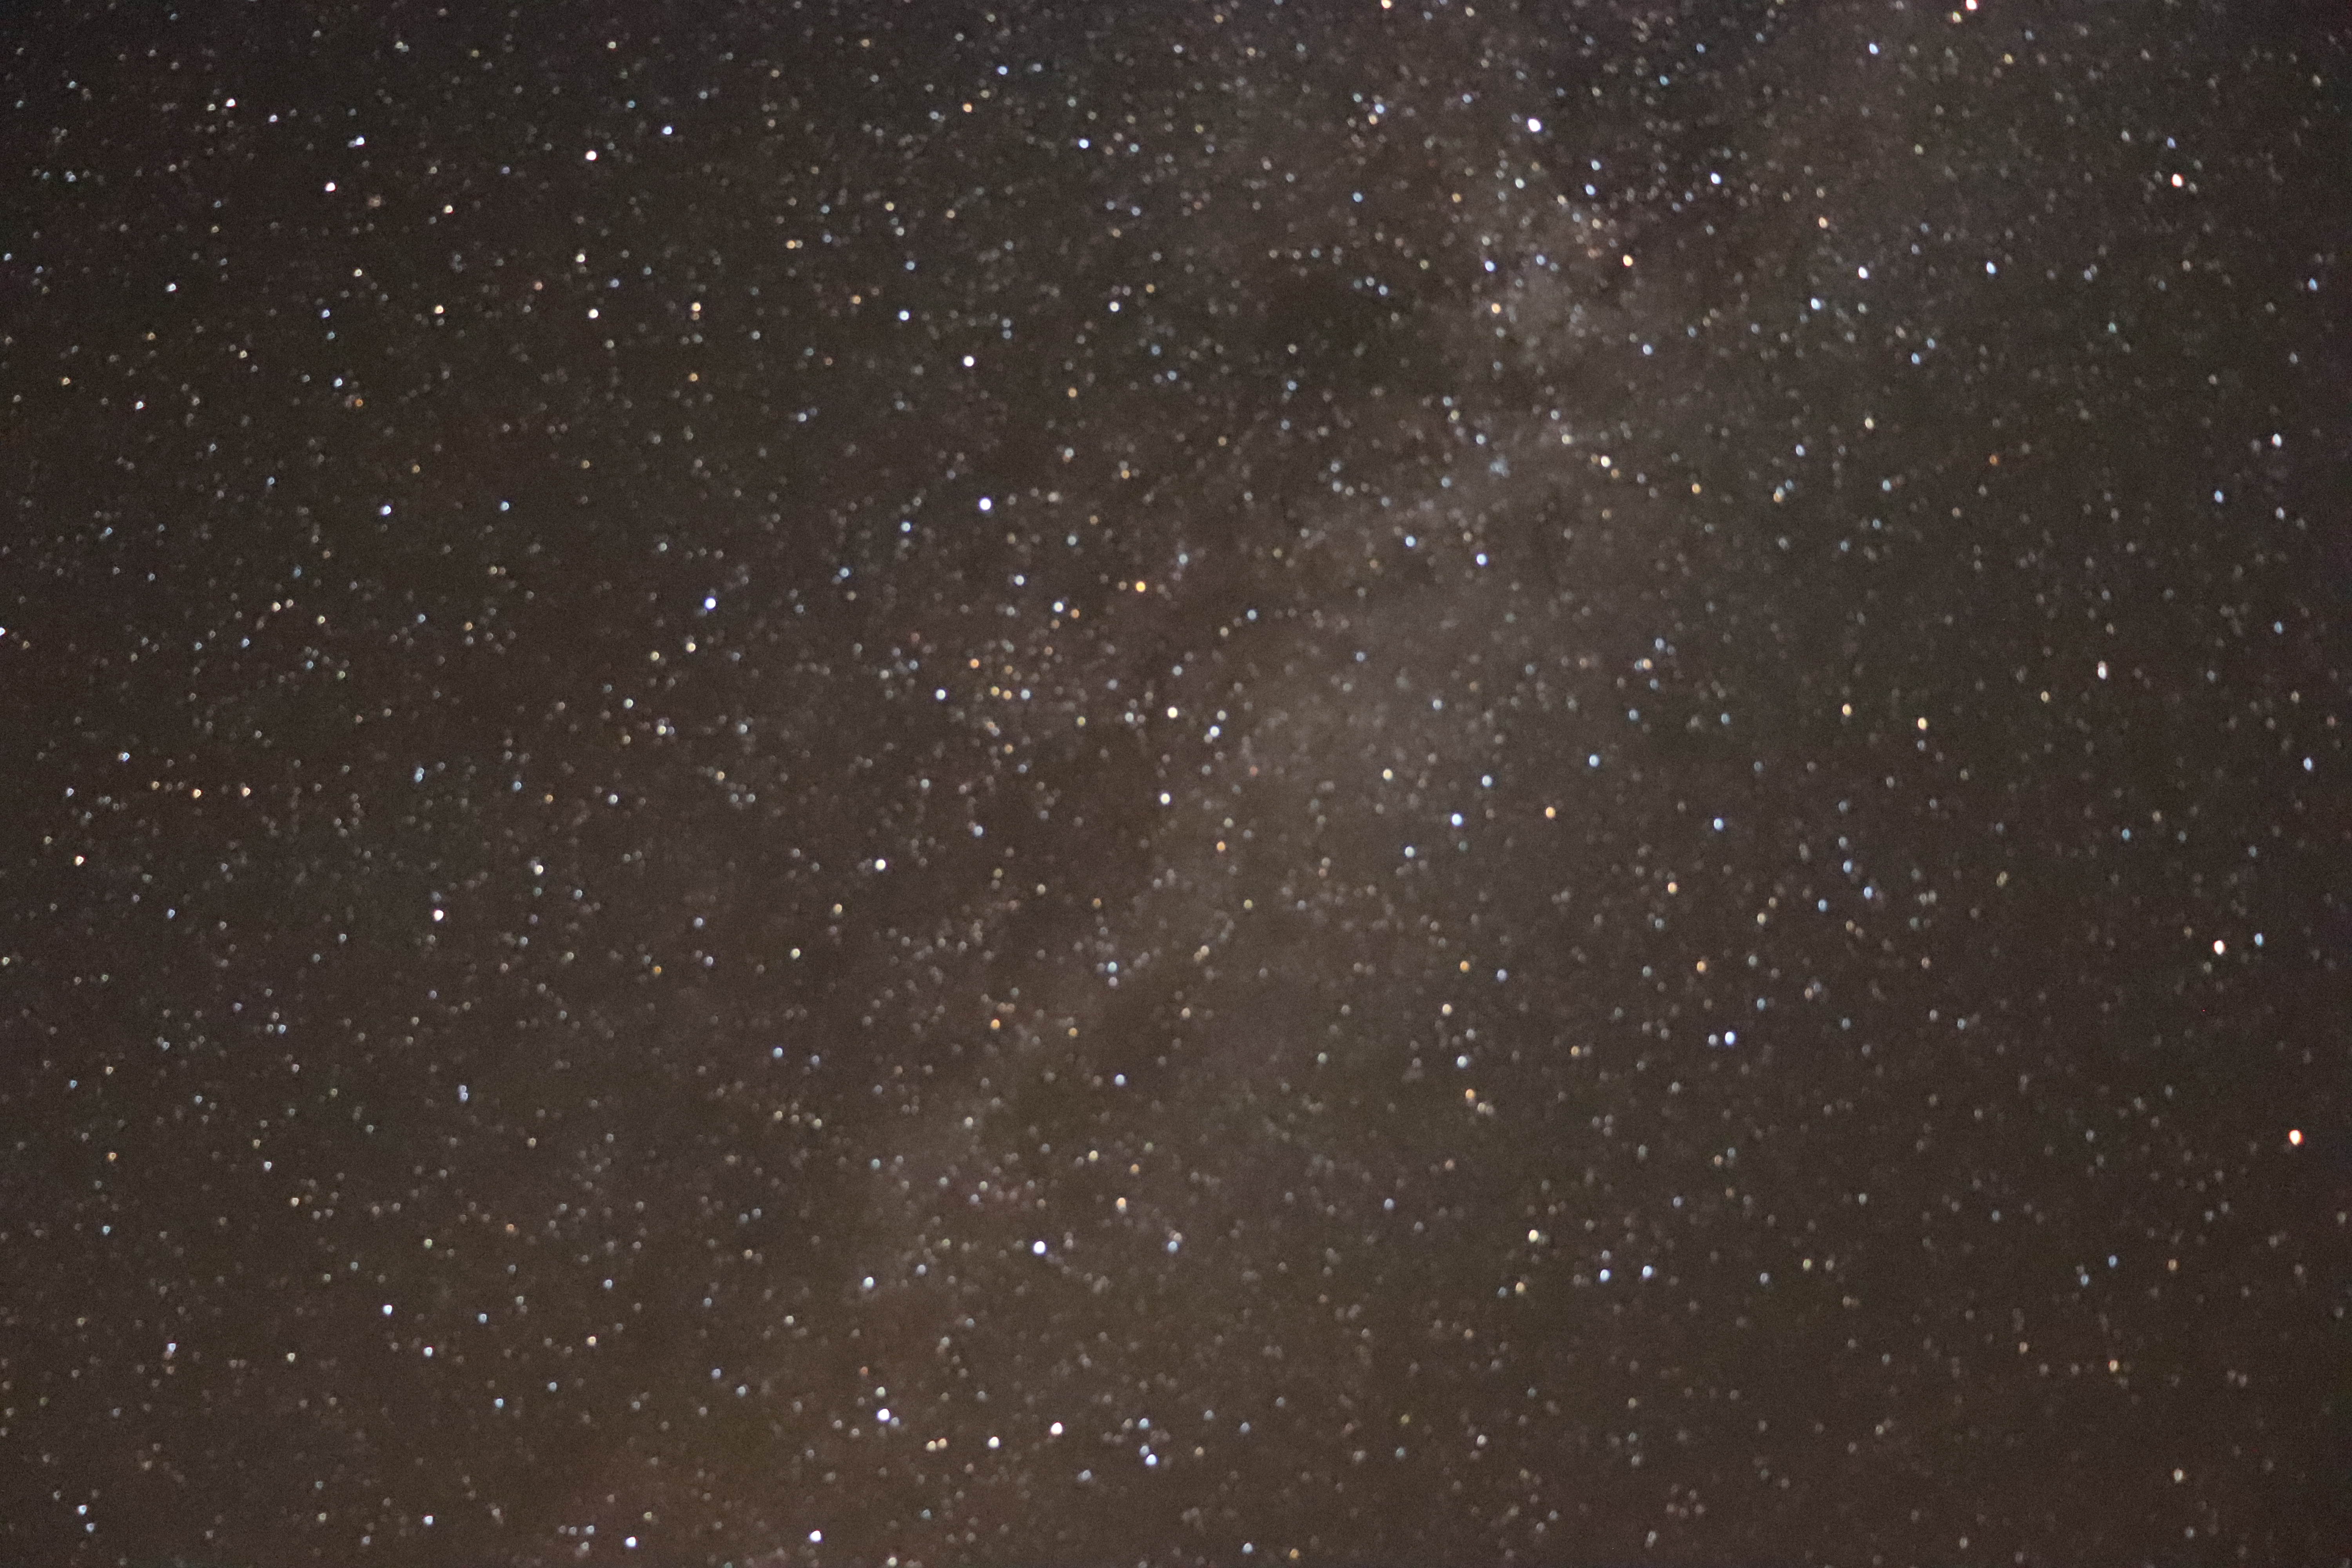 Milky Way Galaxy : Long Exposure - Straight Up View